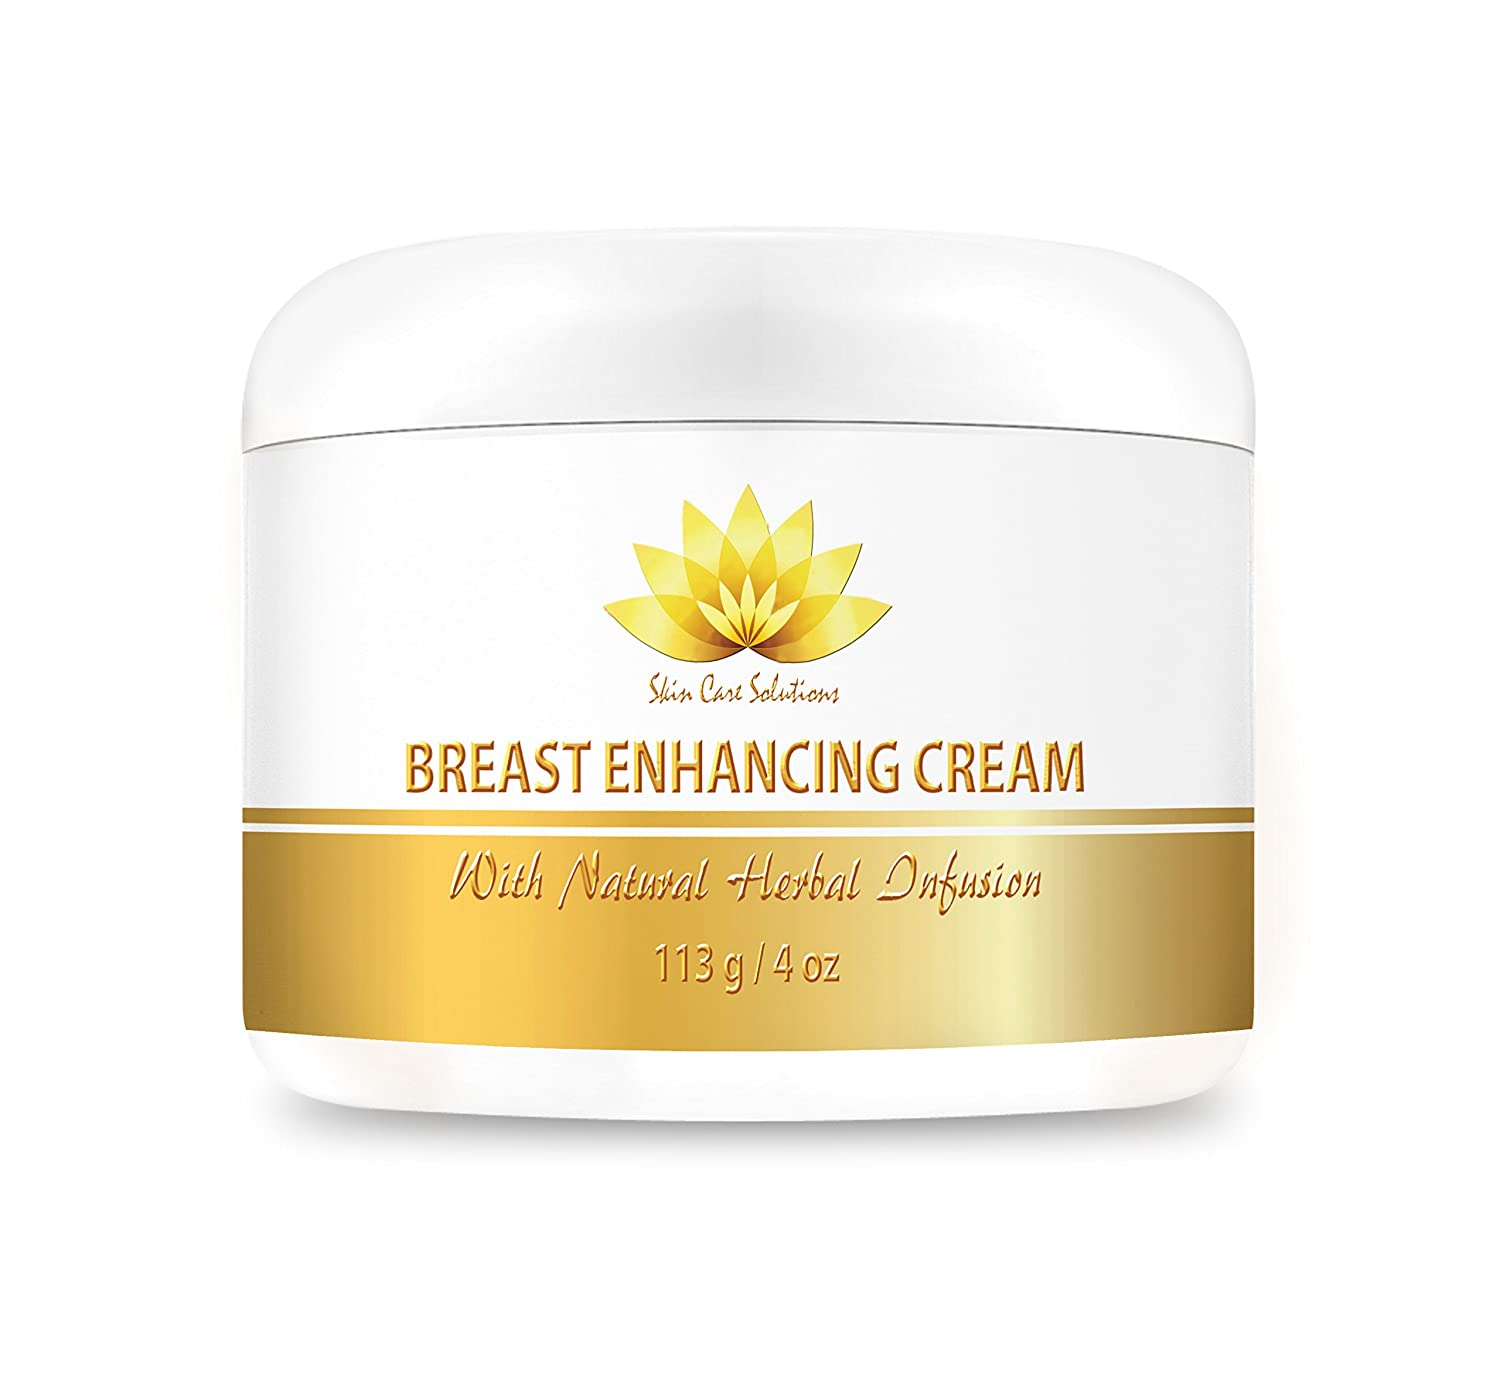 Breast augmentation - BREAST ENHANCING CREAM With Natural Herbal Infusion - Beauty health - 1 Jar(4oz) SKIN CARE SOLUTIONS